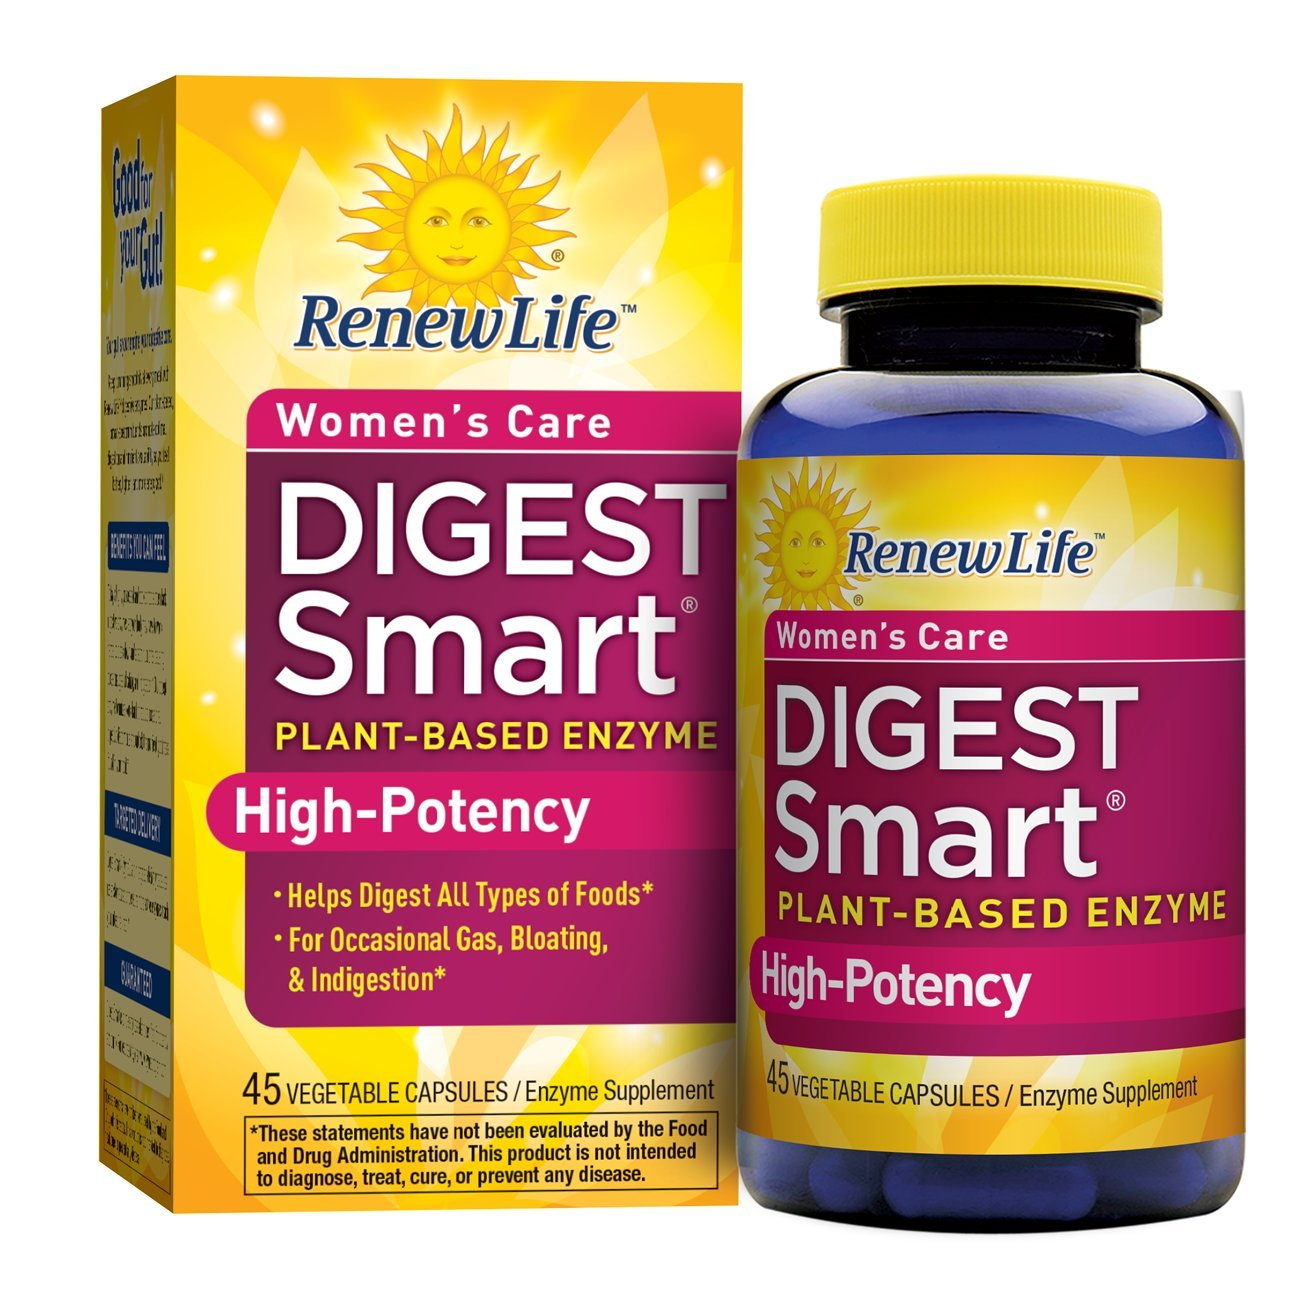 Renew Life - Digest Smart Women's Care - plant-based enzyme supplement - 45 vegetable capsules